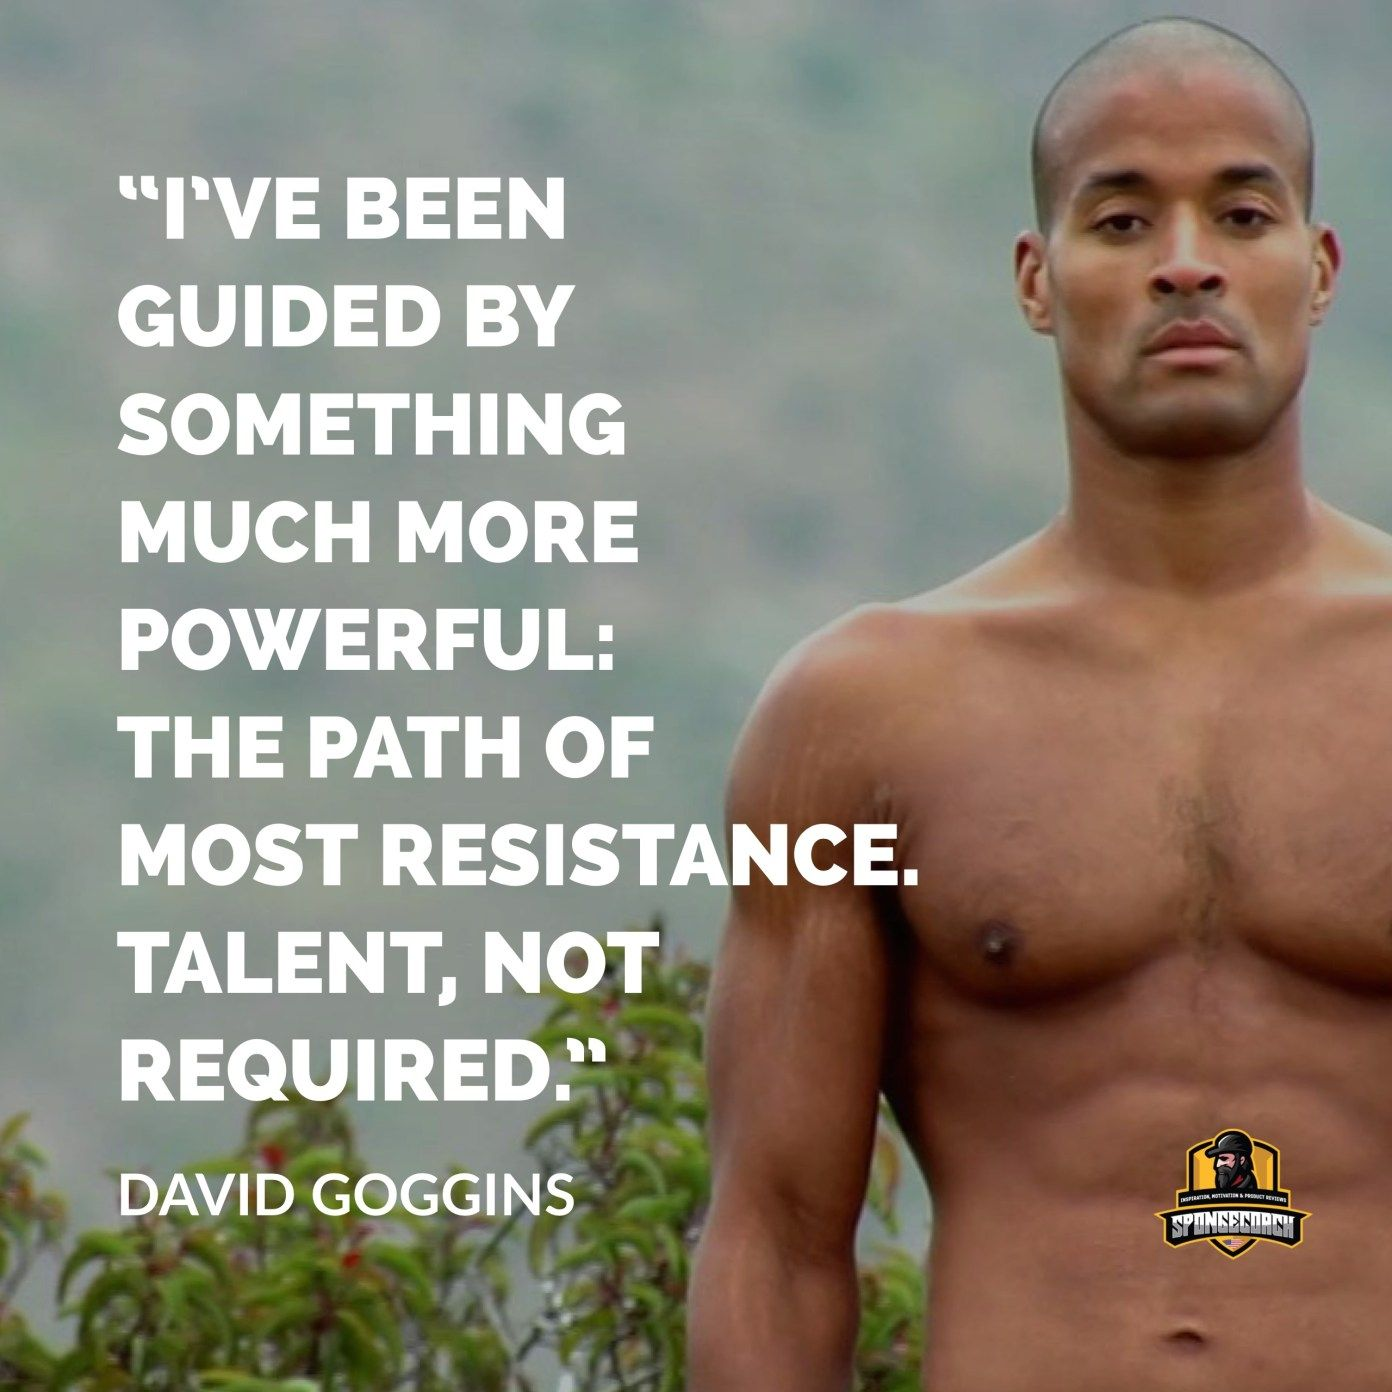 Best David Goggins Quotes Path Of Most Resistance David Goggins Tough Day Quotes Motivational Quotes For Life